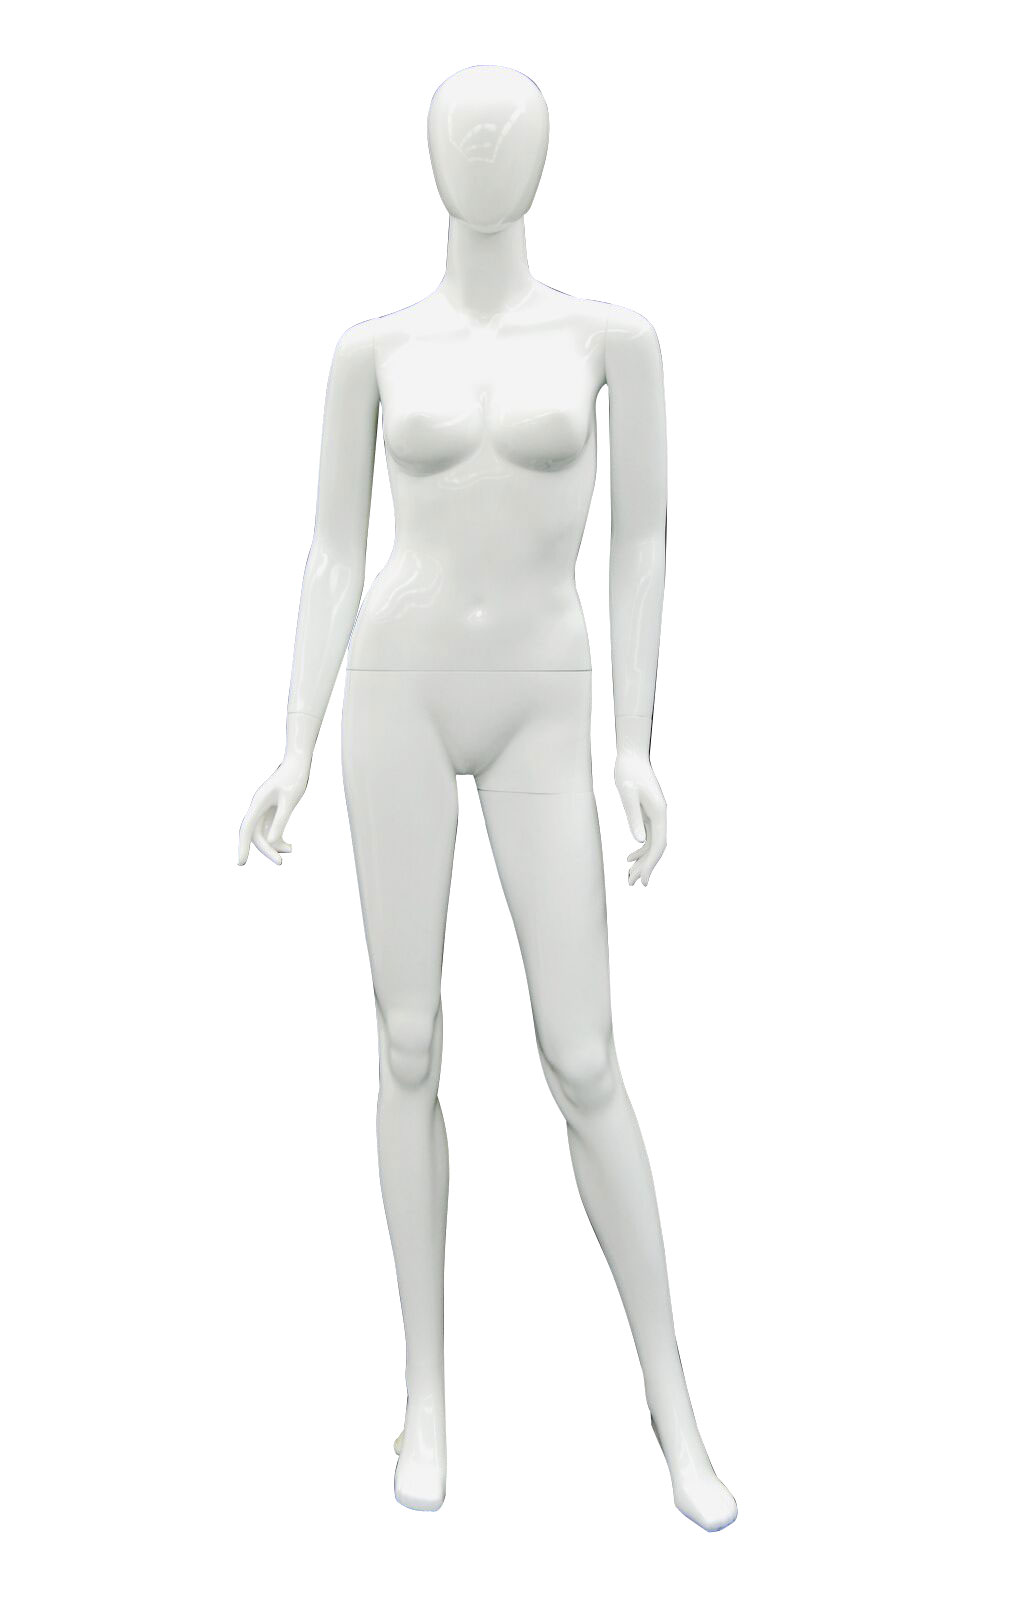 263191- Super Kate Unbreakable Glossy Female Mannequin